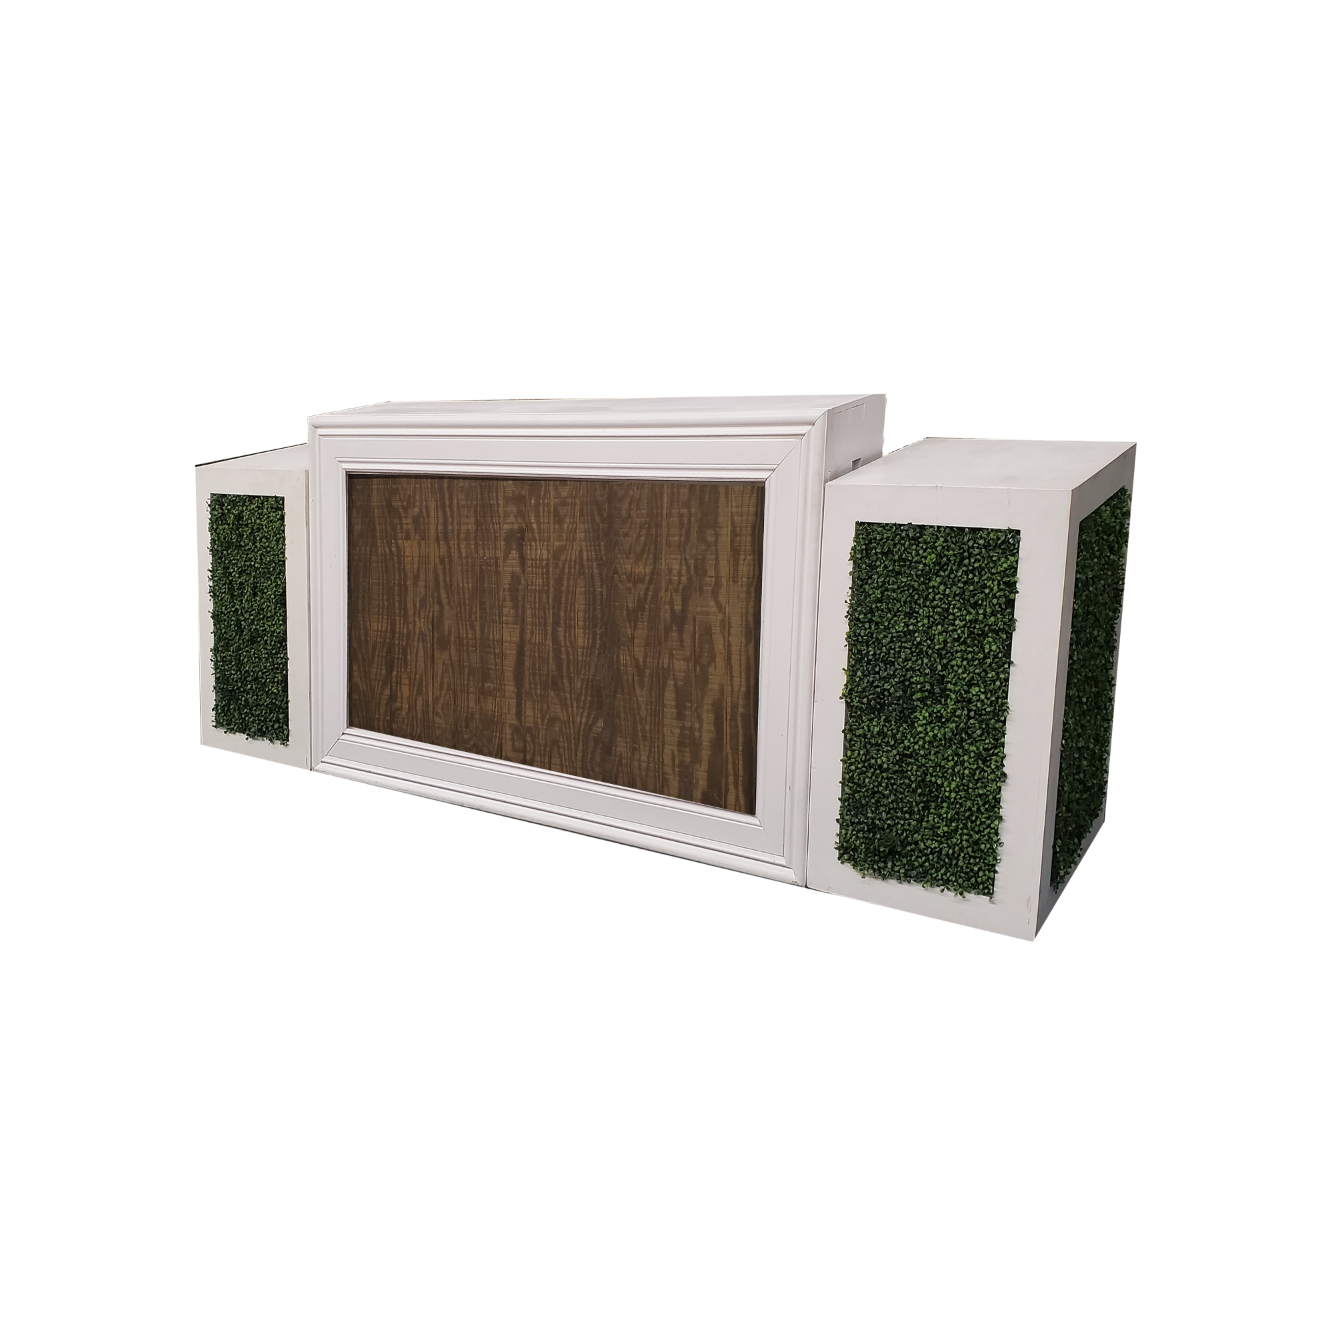 White Frame/Mahogany Insert with Hedge Pedestals $350